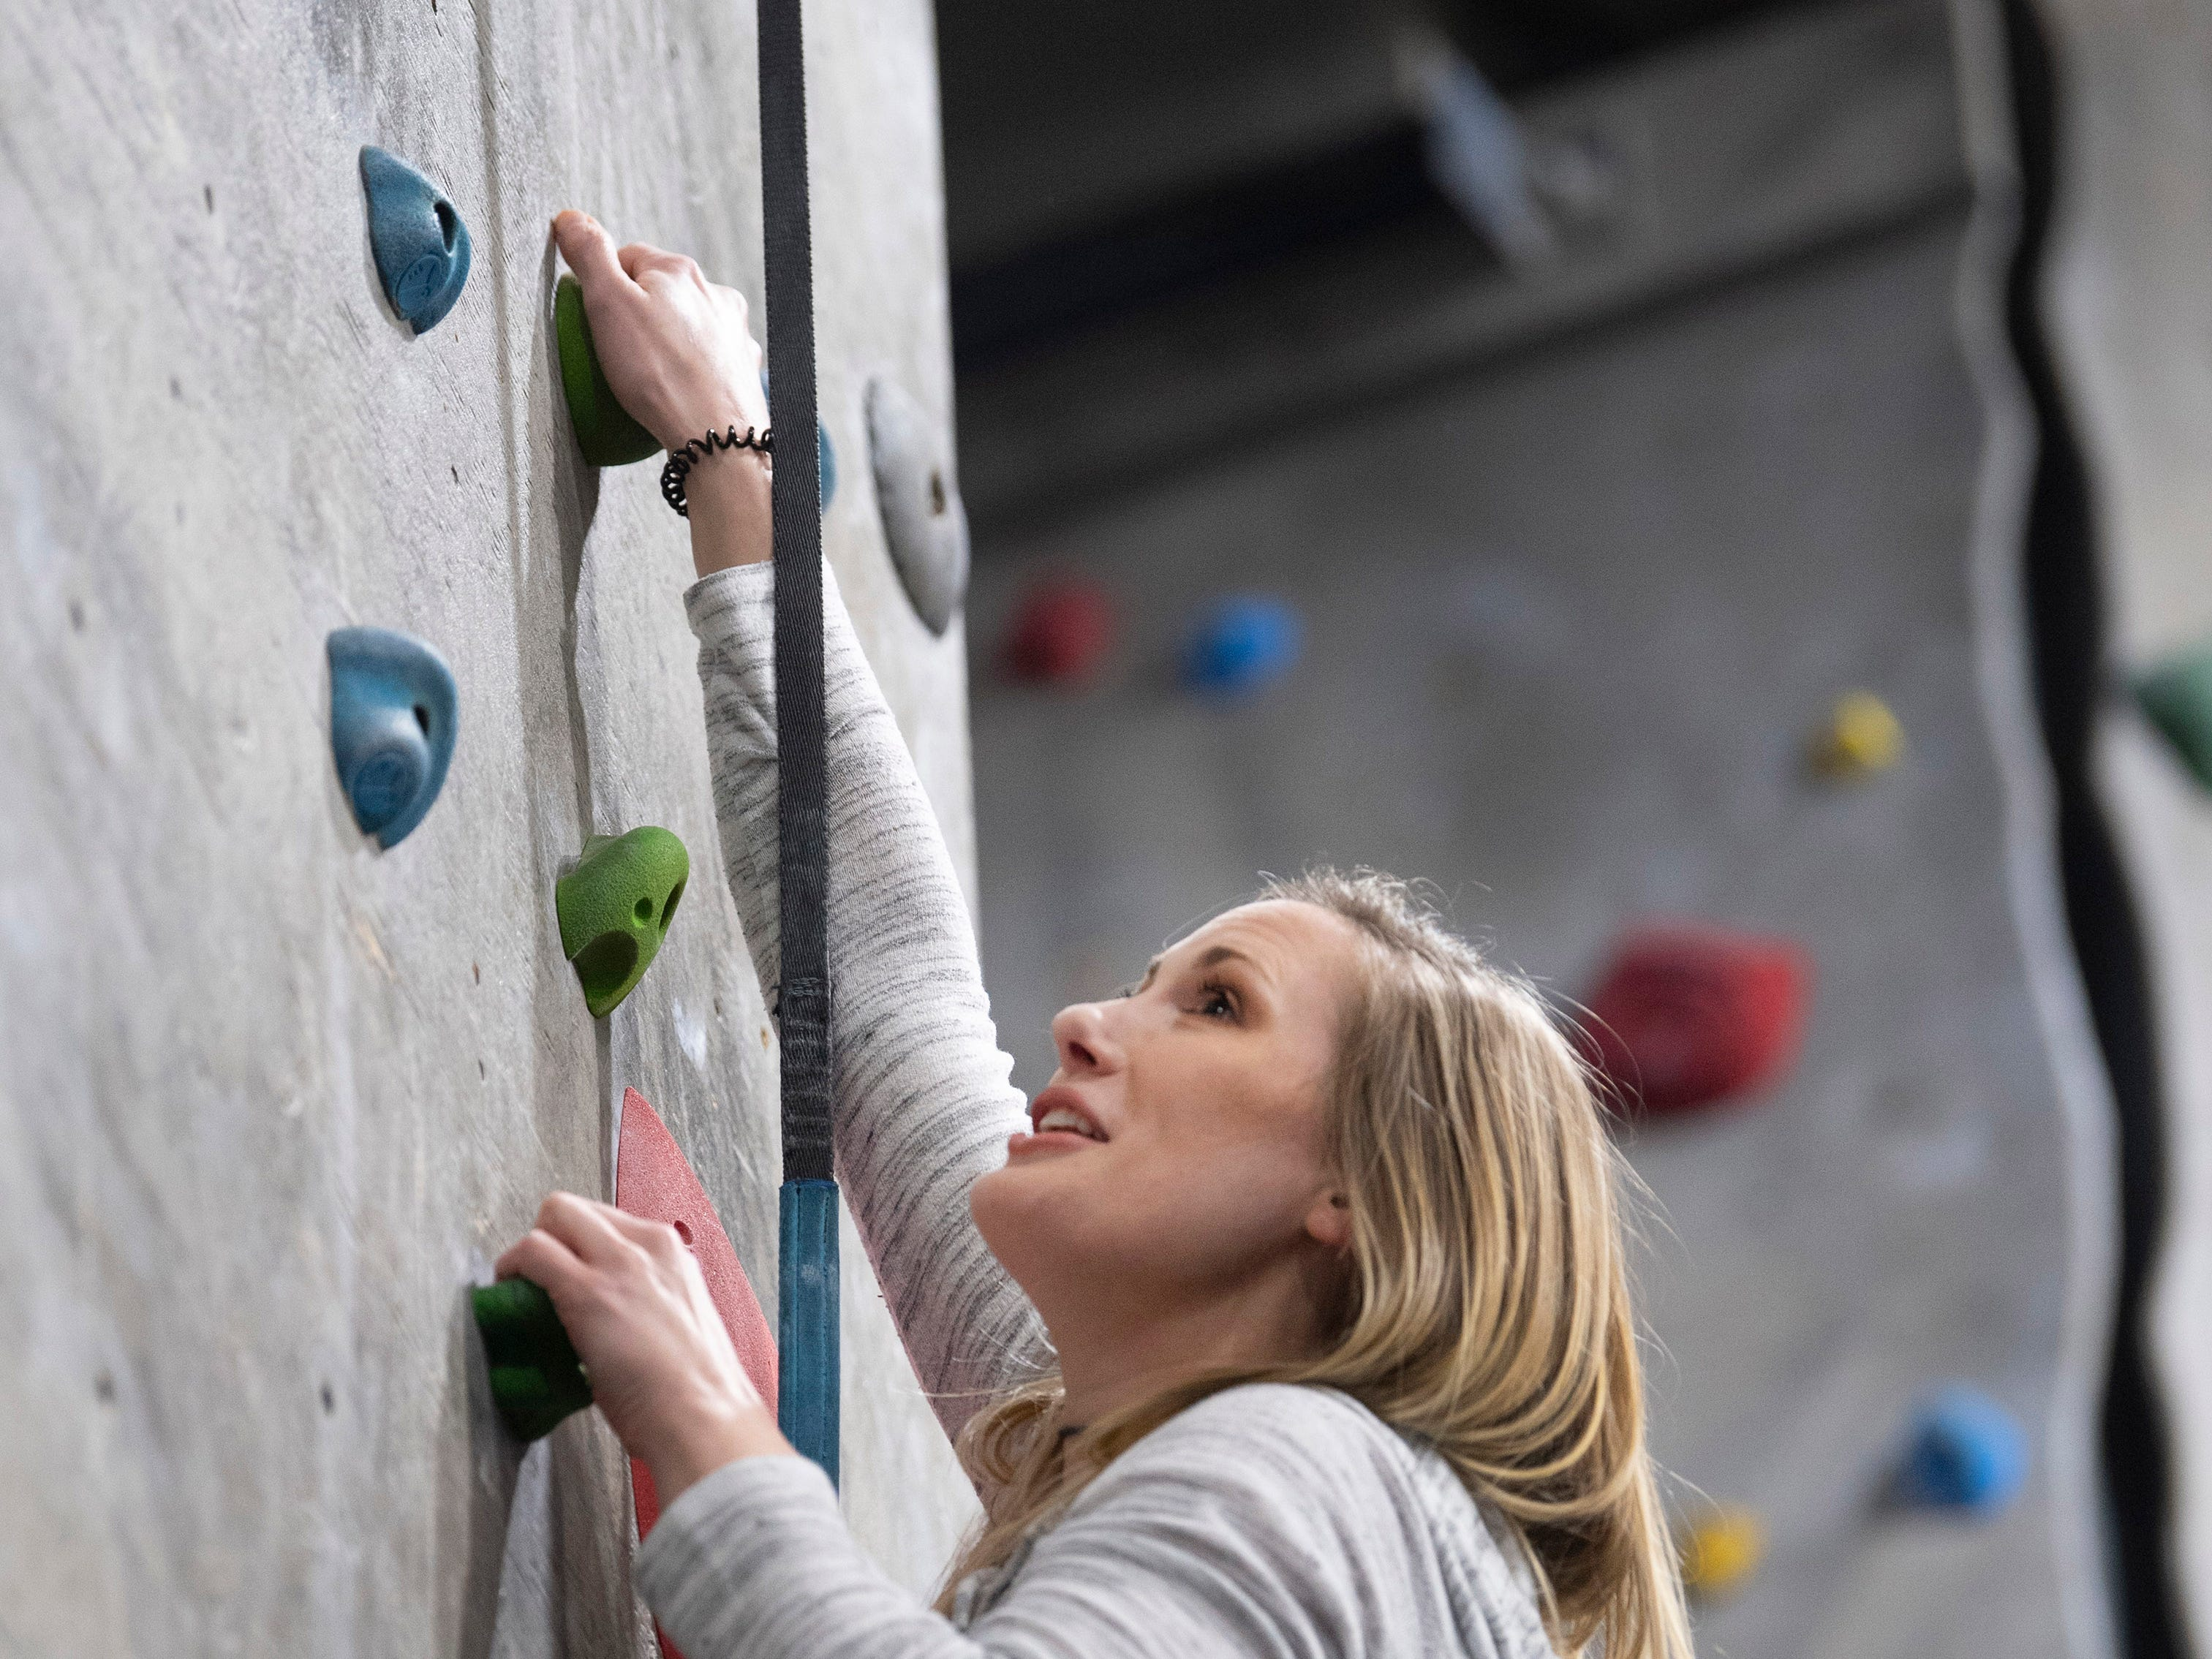 Heather Fuller of Henderson, Ky., races up an auto-belay course in hopes of beating her friend, Bradley West of Morganfield, Ky., at Vertical eXcape at 1315 N. Royal Avenue in Evansville Friday evening.